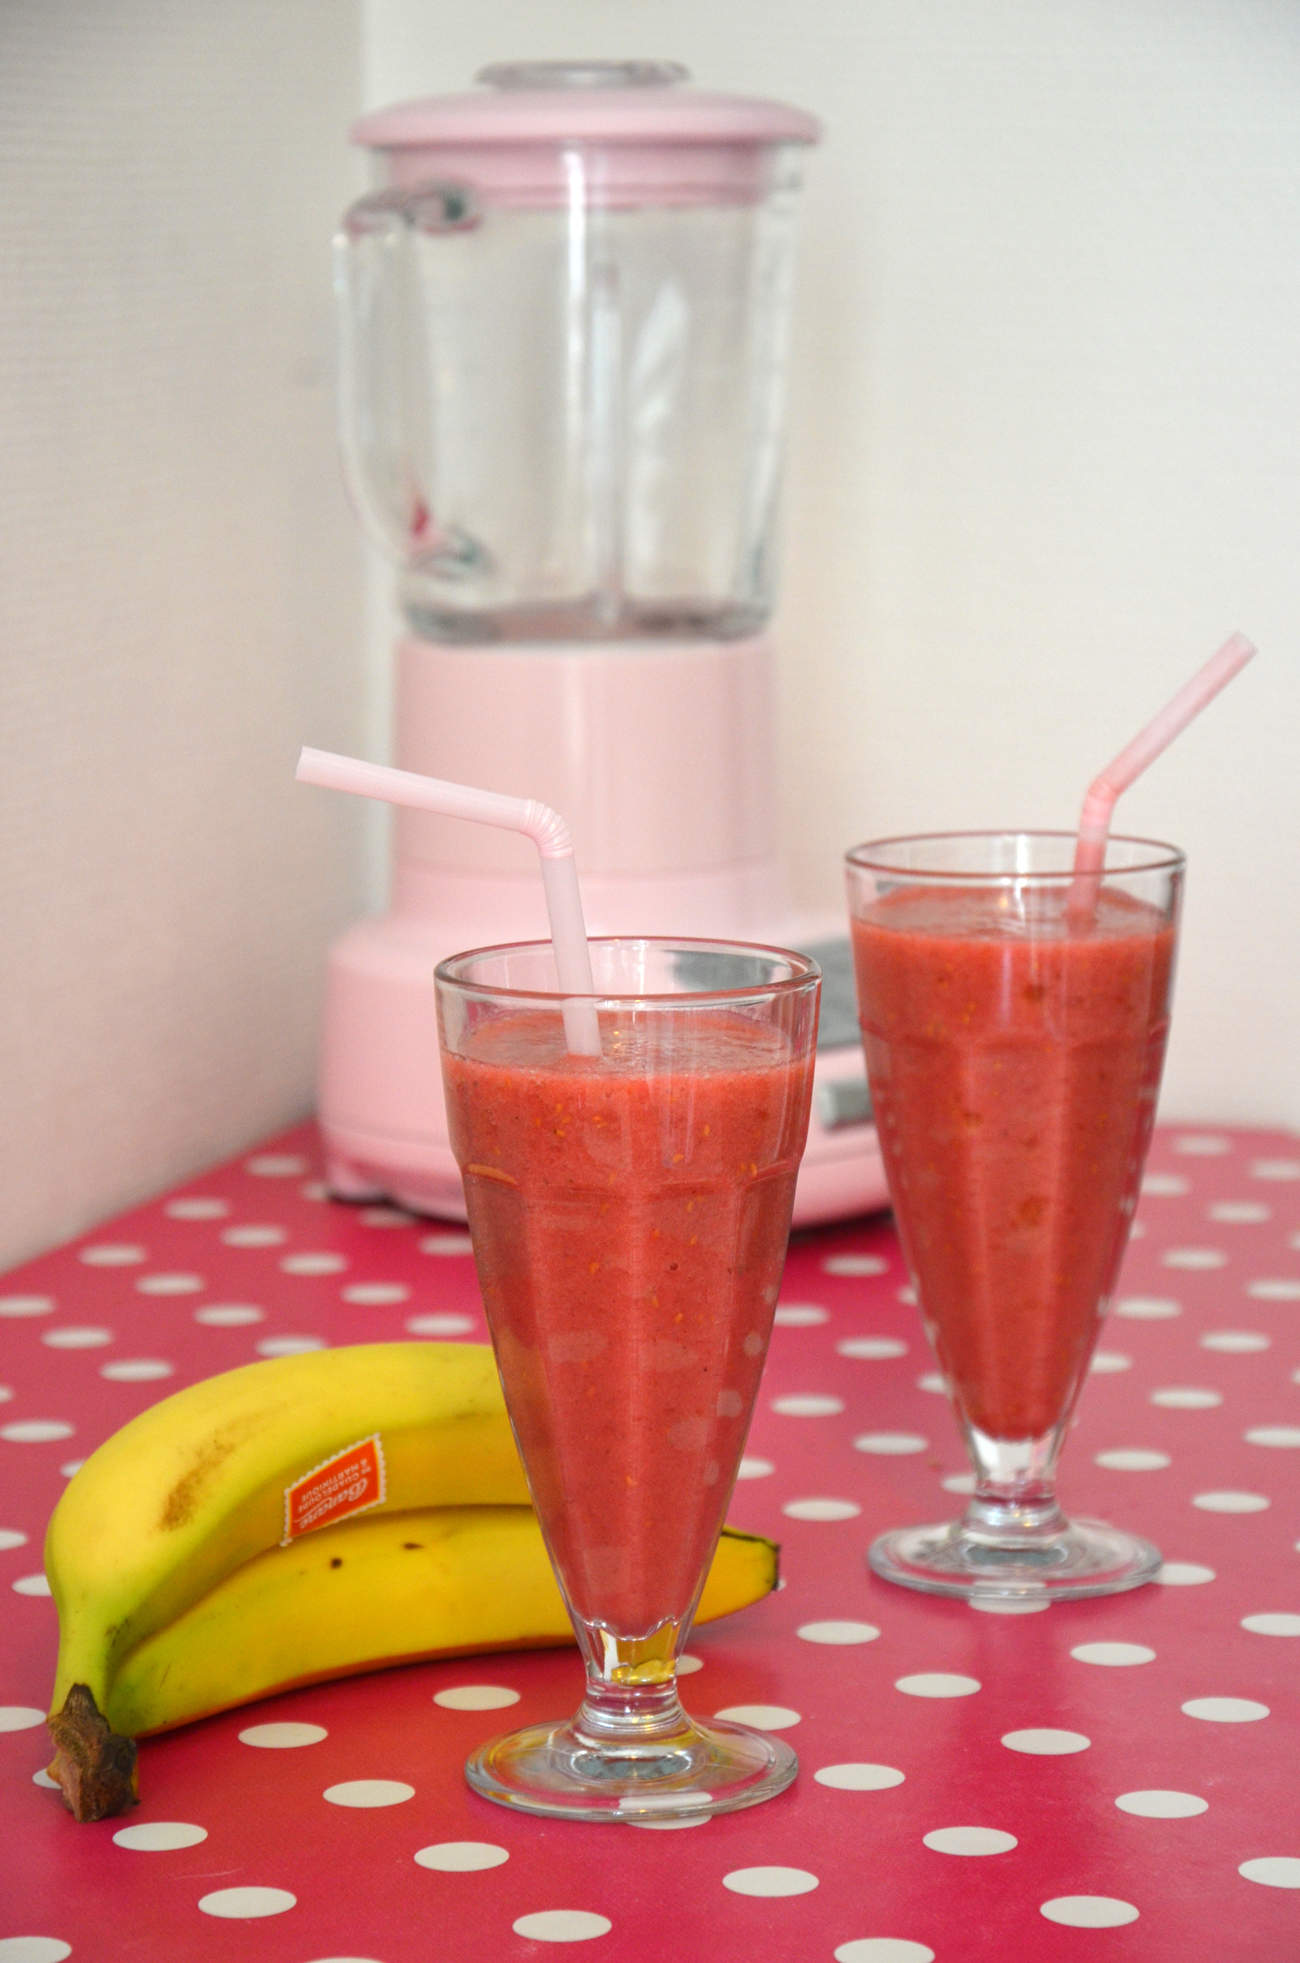 Recette smoothie banane